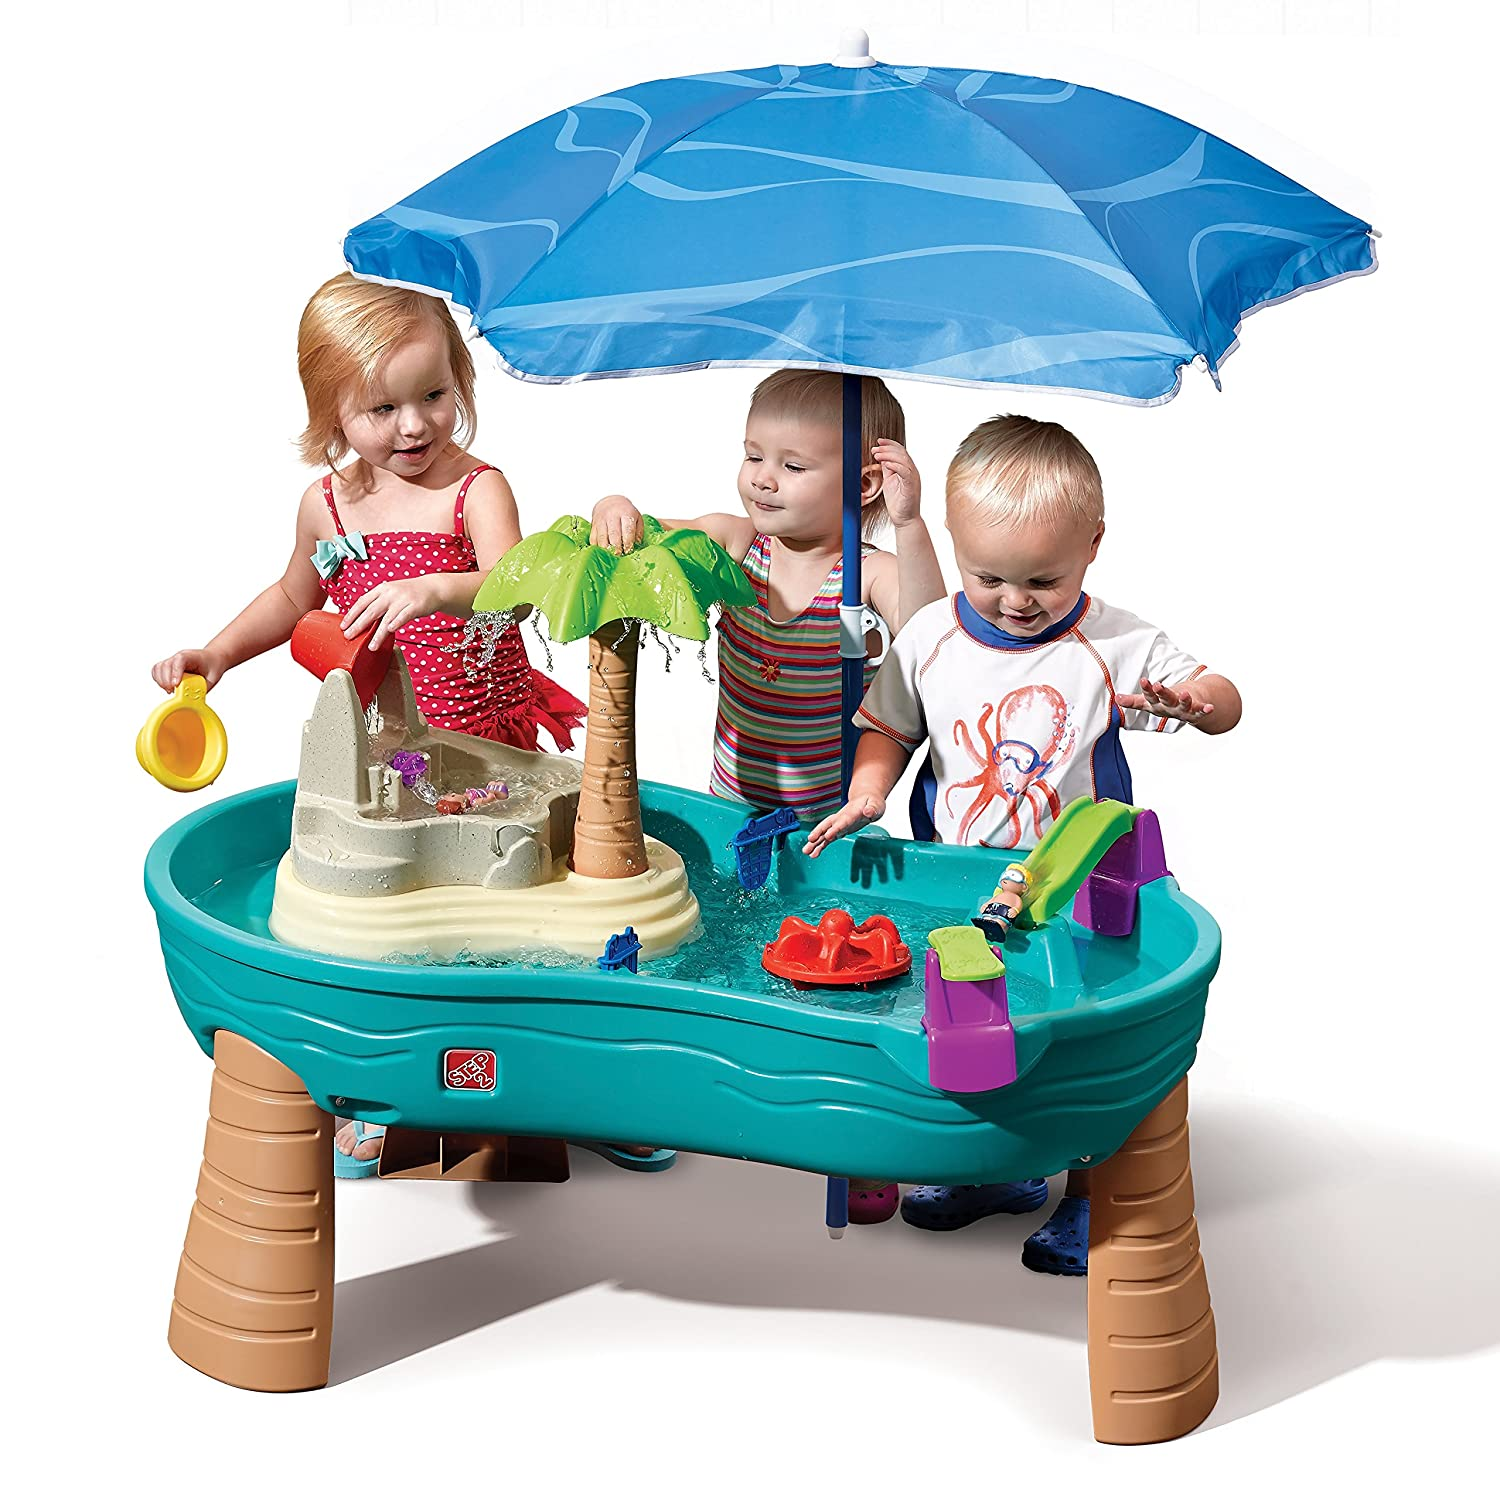 Amazing Amazon.com: Step2 Splish Splash Seas Water Table With Umbrella: Toys U0026 Games